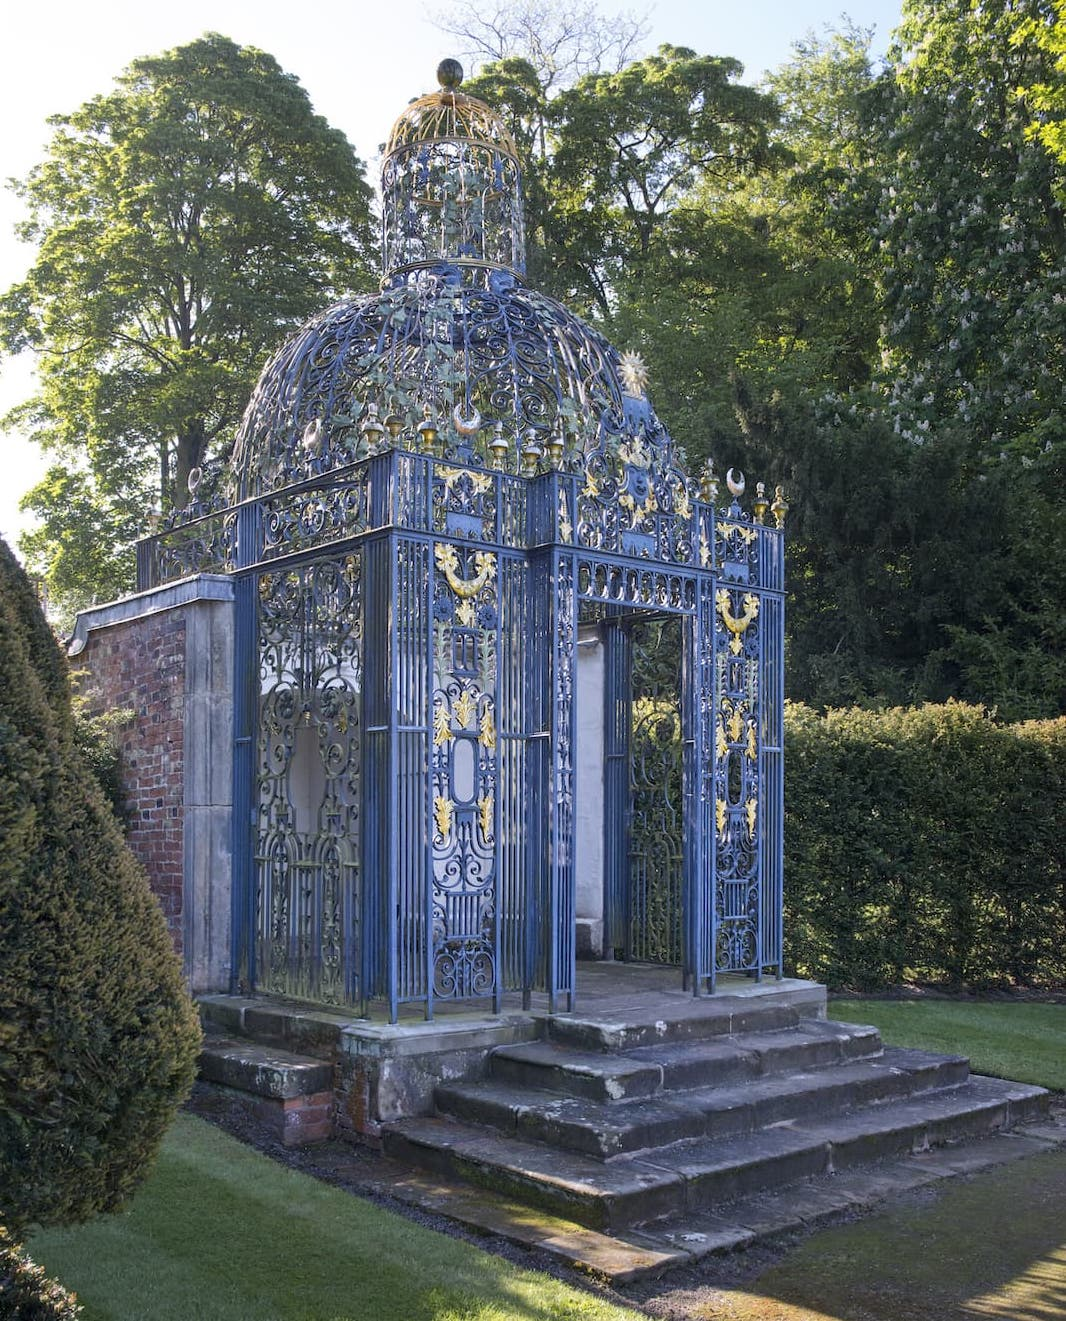 The Birdcage at Melbourne Hall Gardens